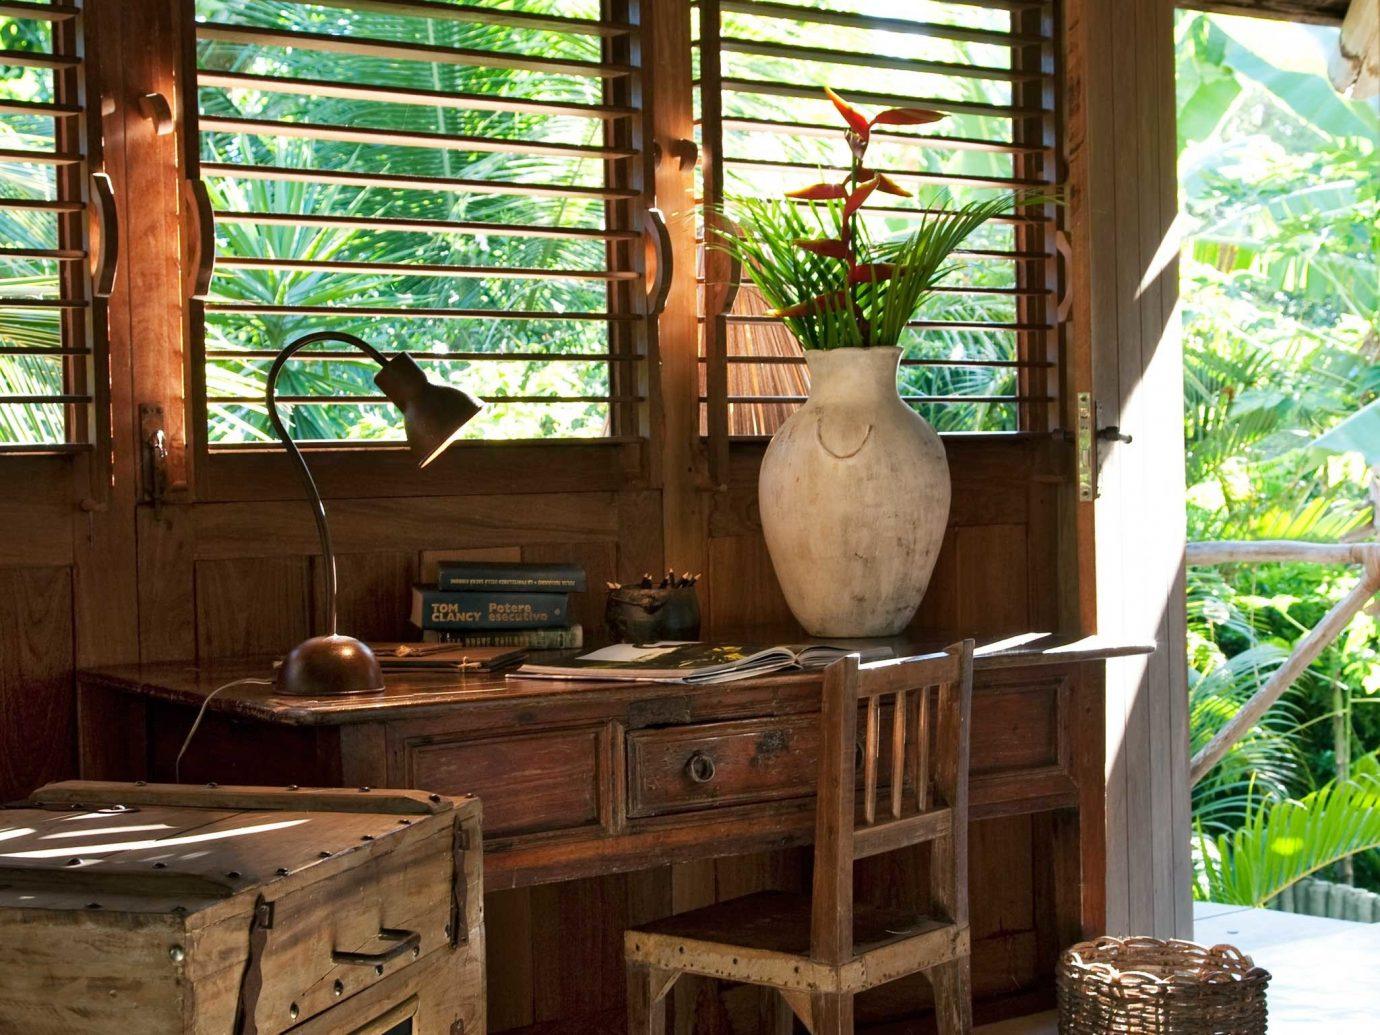 Beachfront Bedroom Eco Rustic Trip Ideas Tropical Waterfront floor indoor Living room house home estate wood log cabin interior design living room cottage Design Resort furniture farmhouse